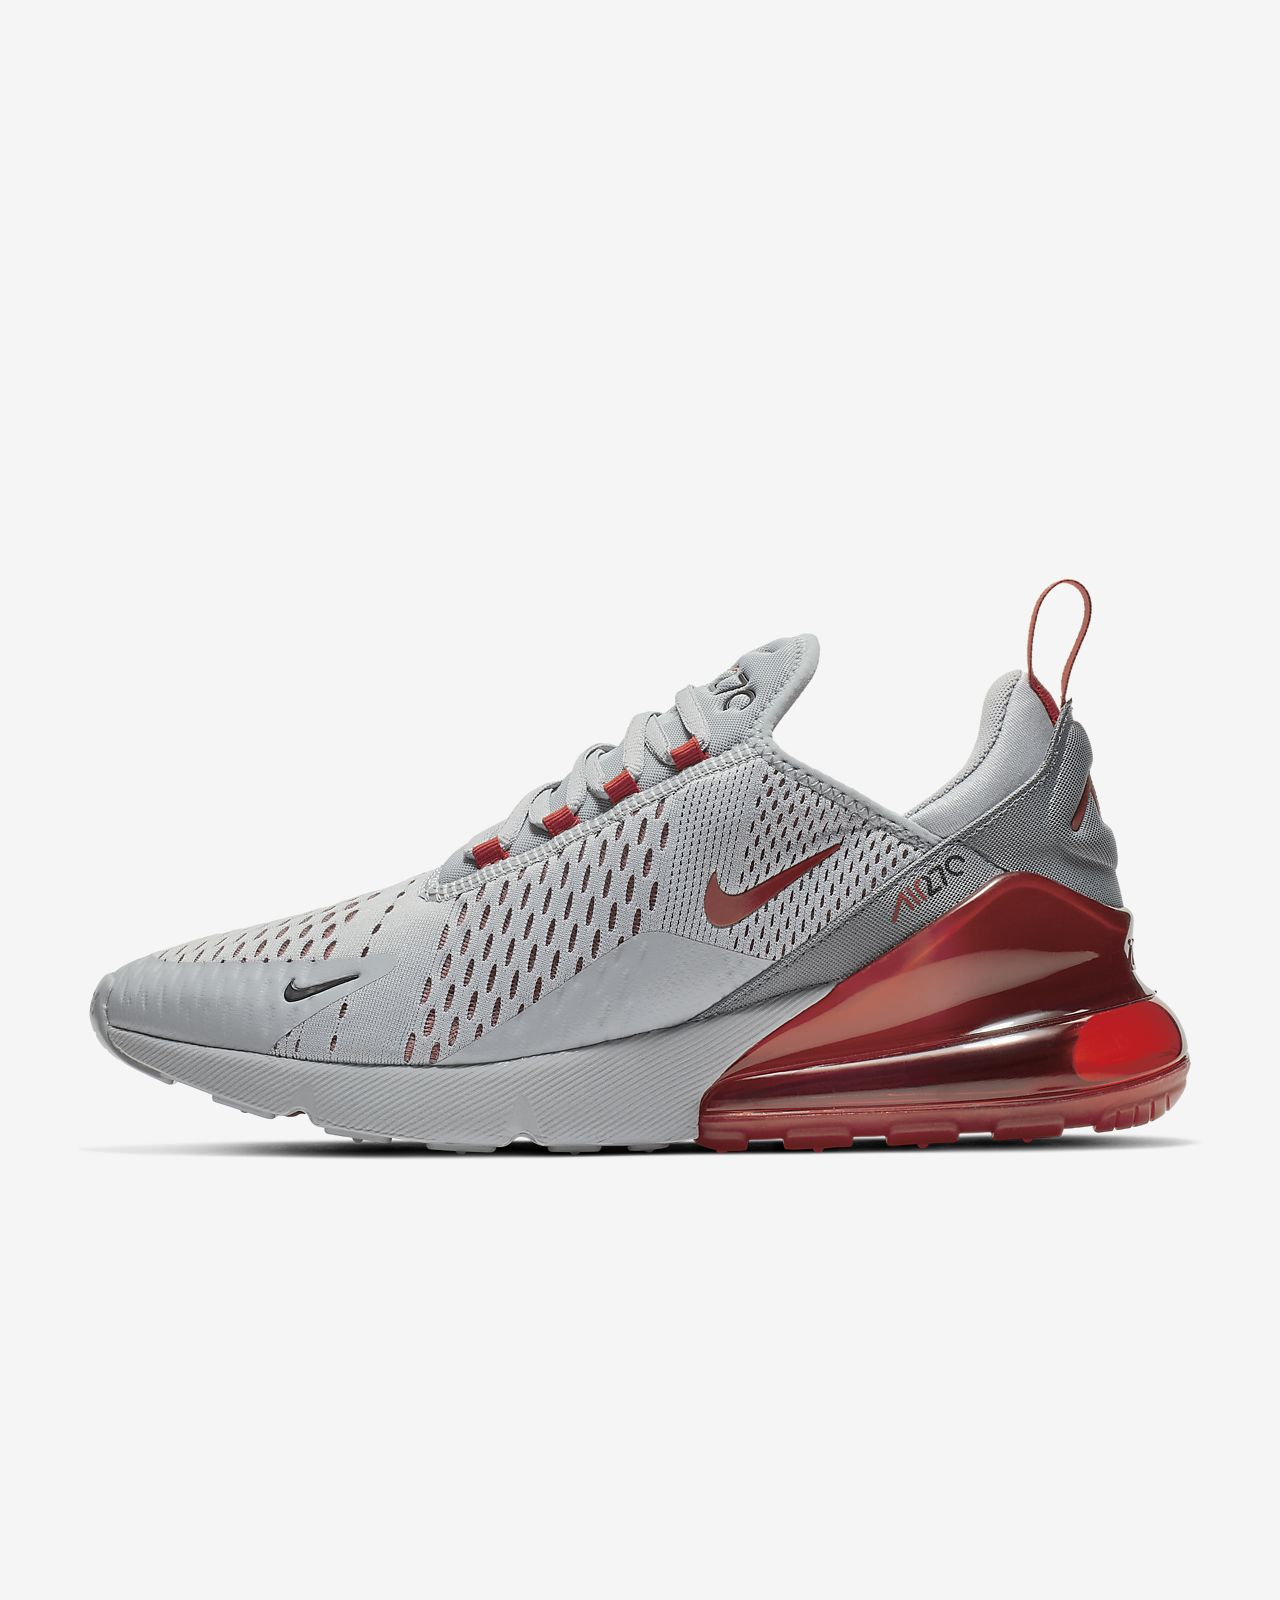 cheaper 936f1 fdd08 Nike Air Max 270